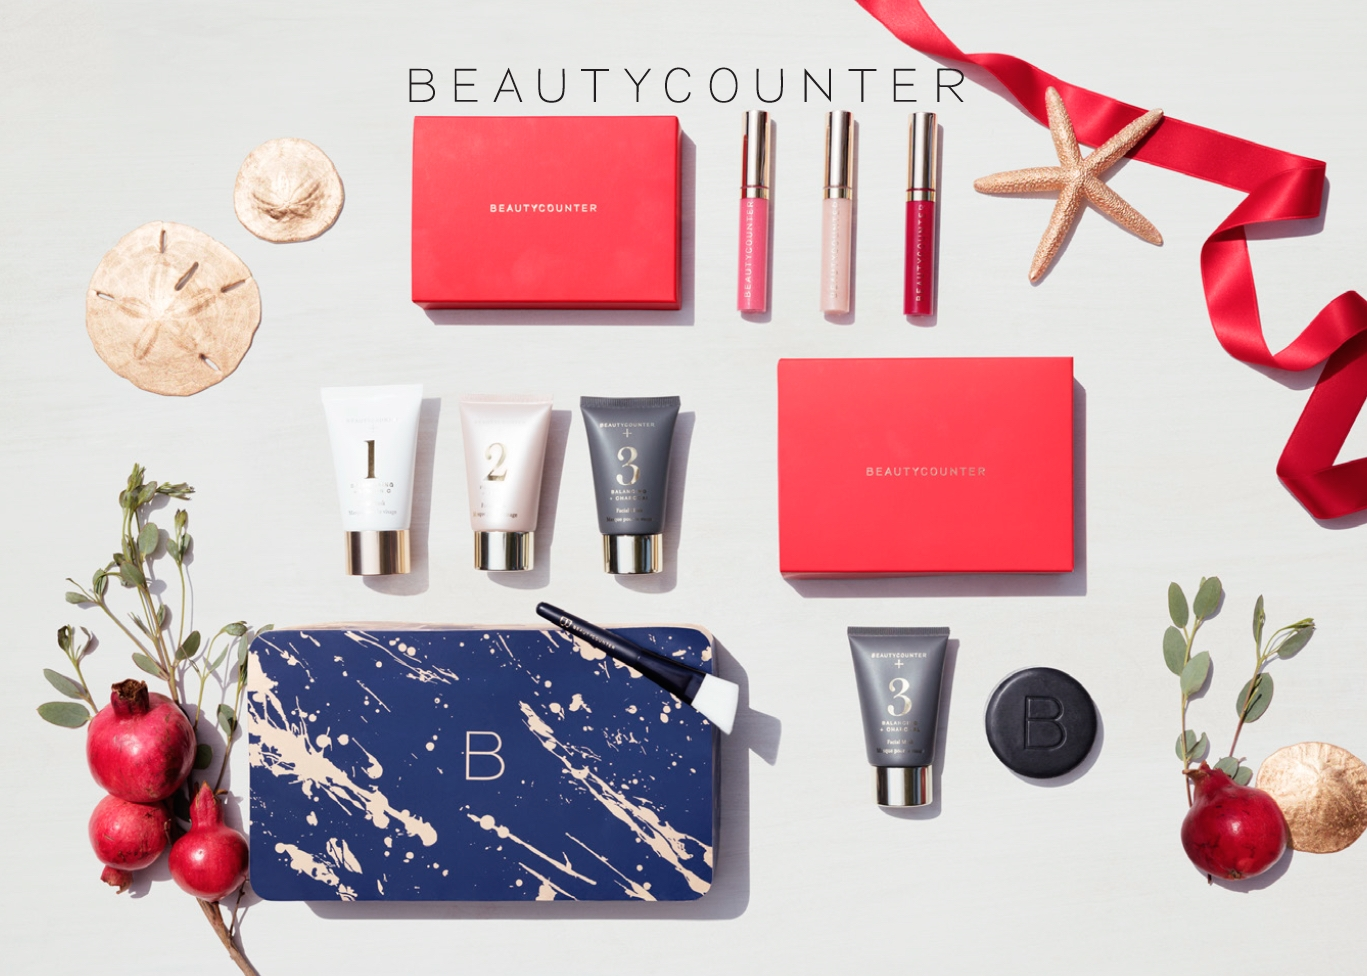 Cassie's Beautycounter Holiday Favorites! - November 2017